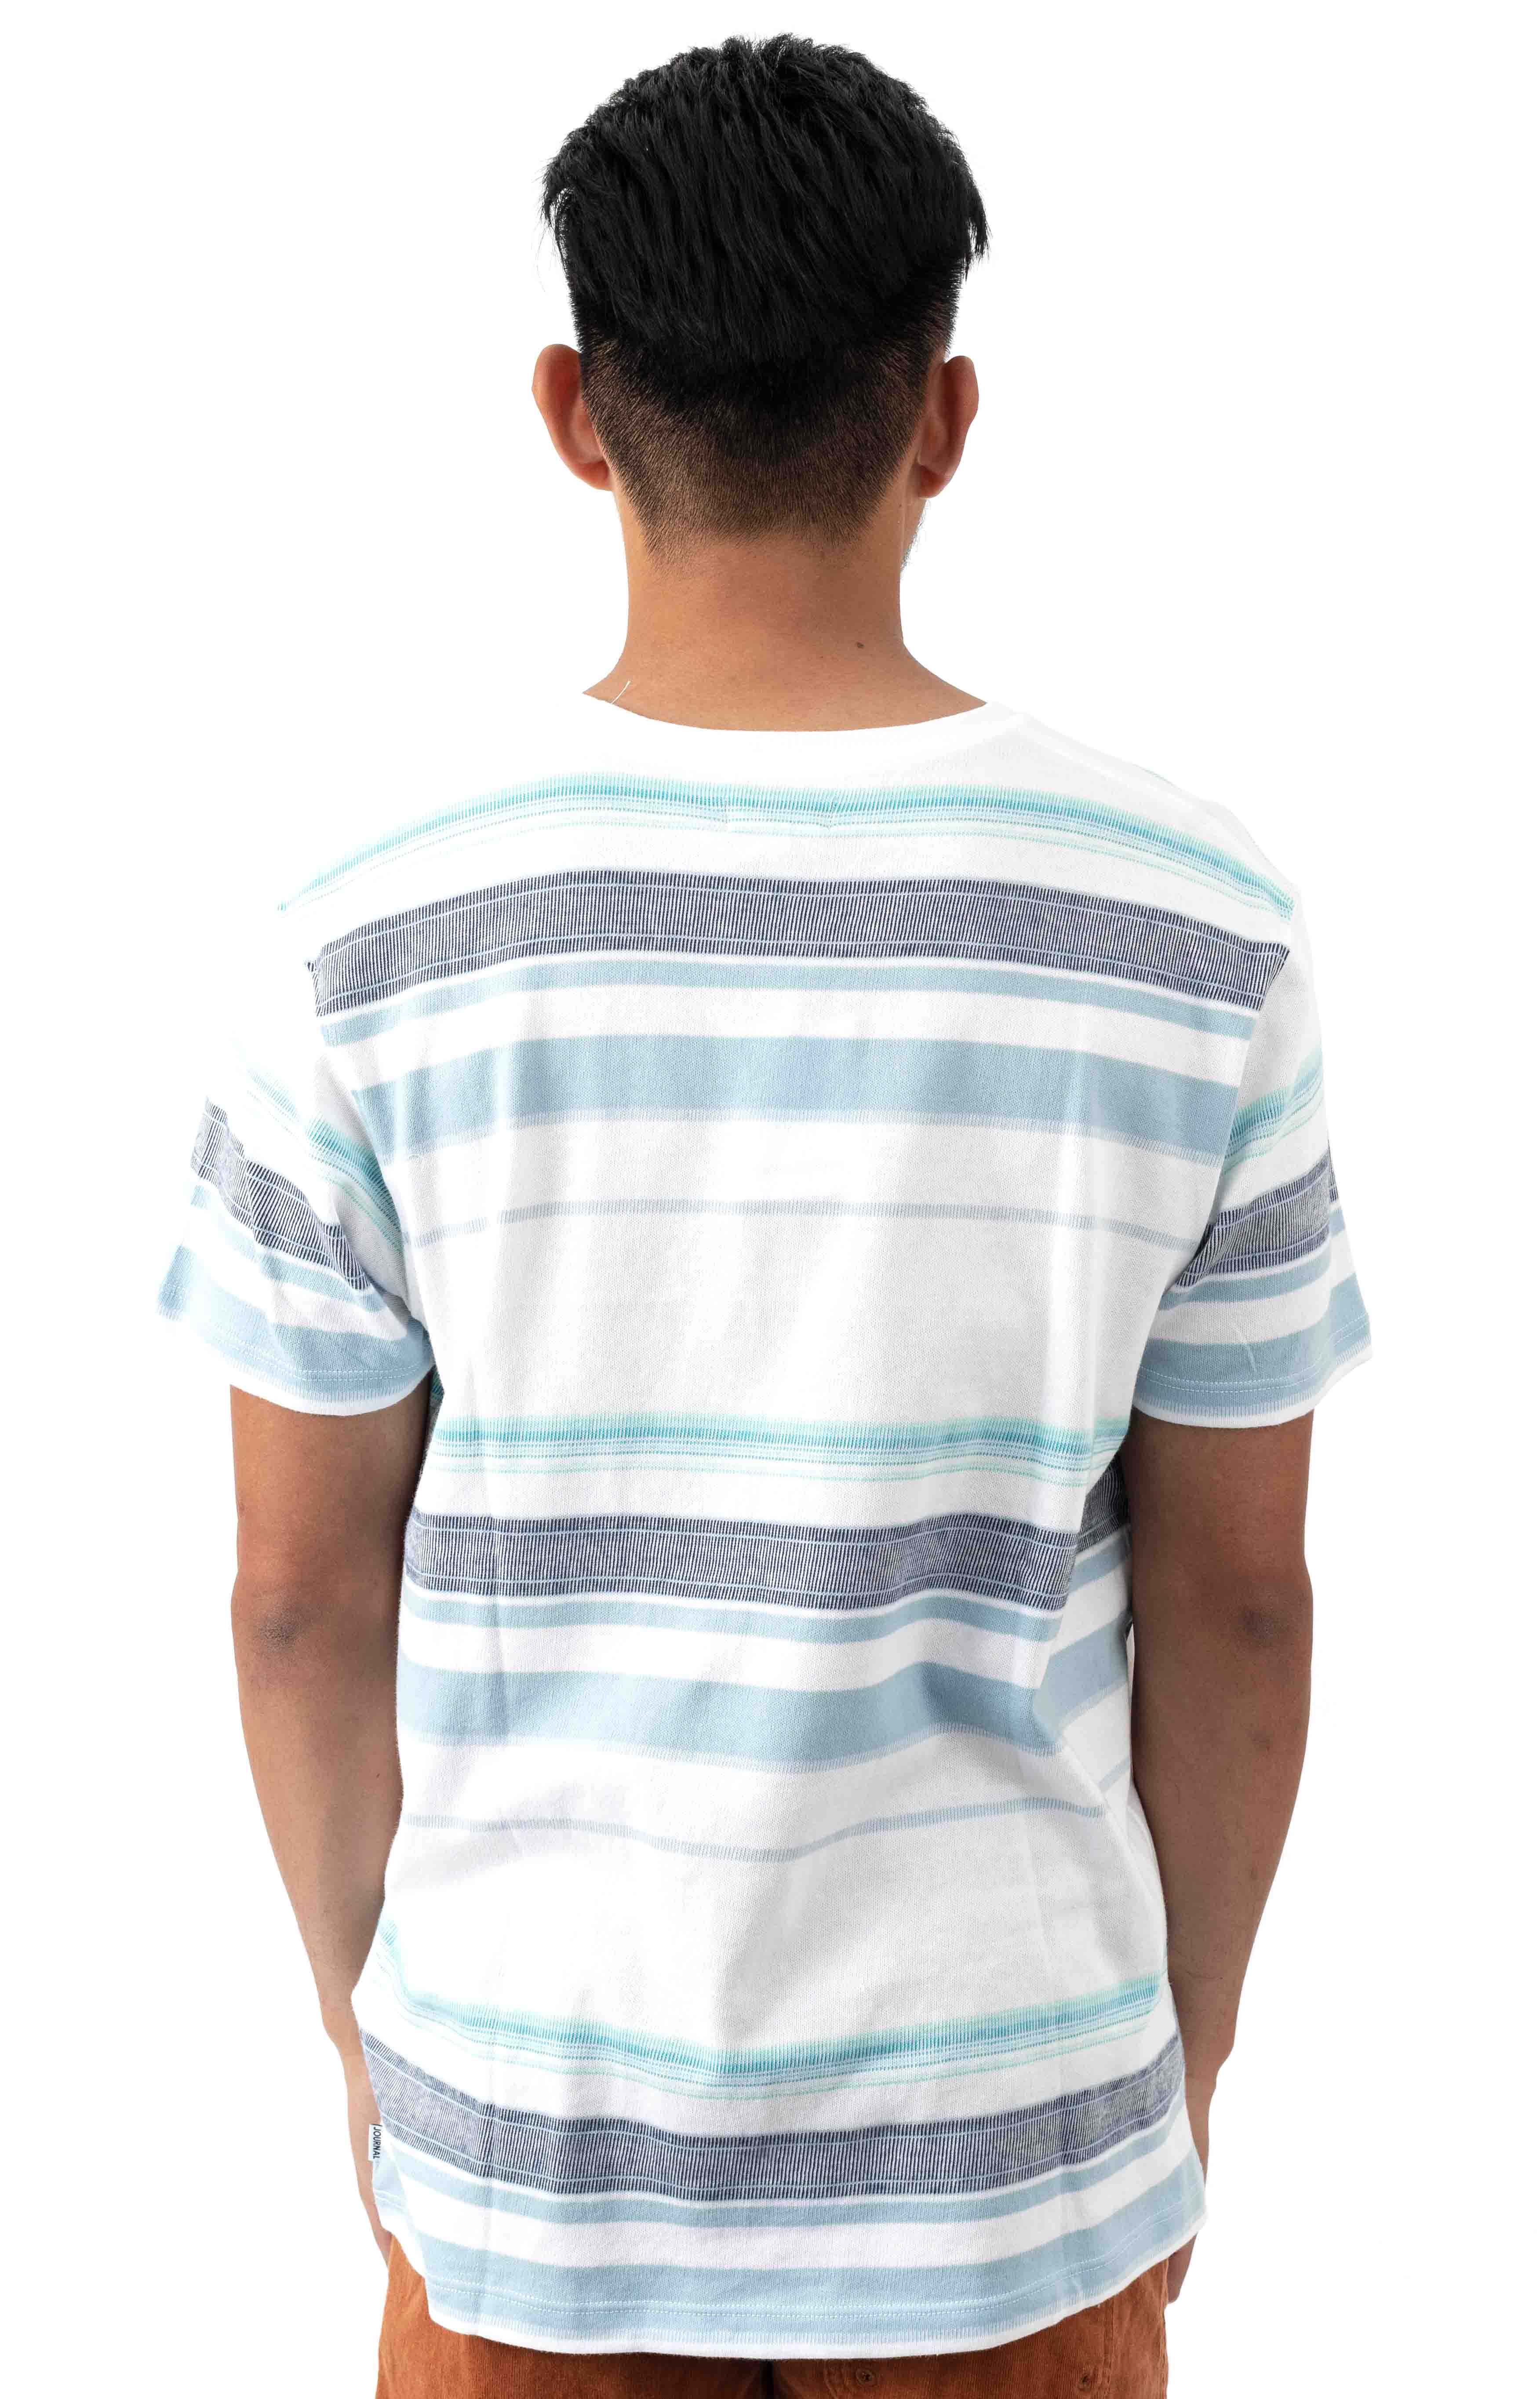 Buckley T-Shirt - Off White  3